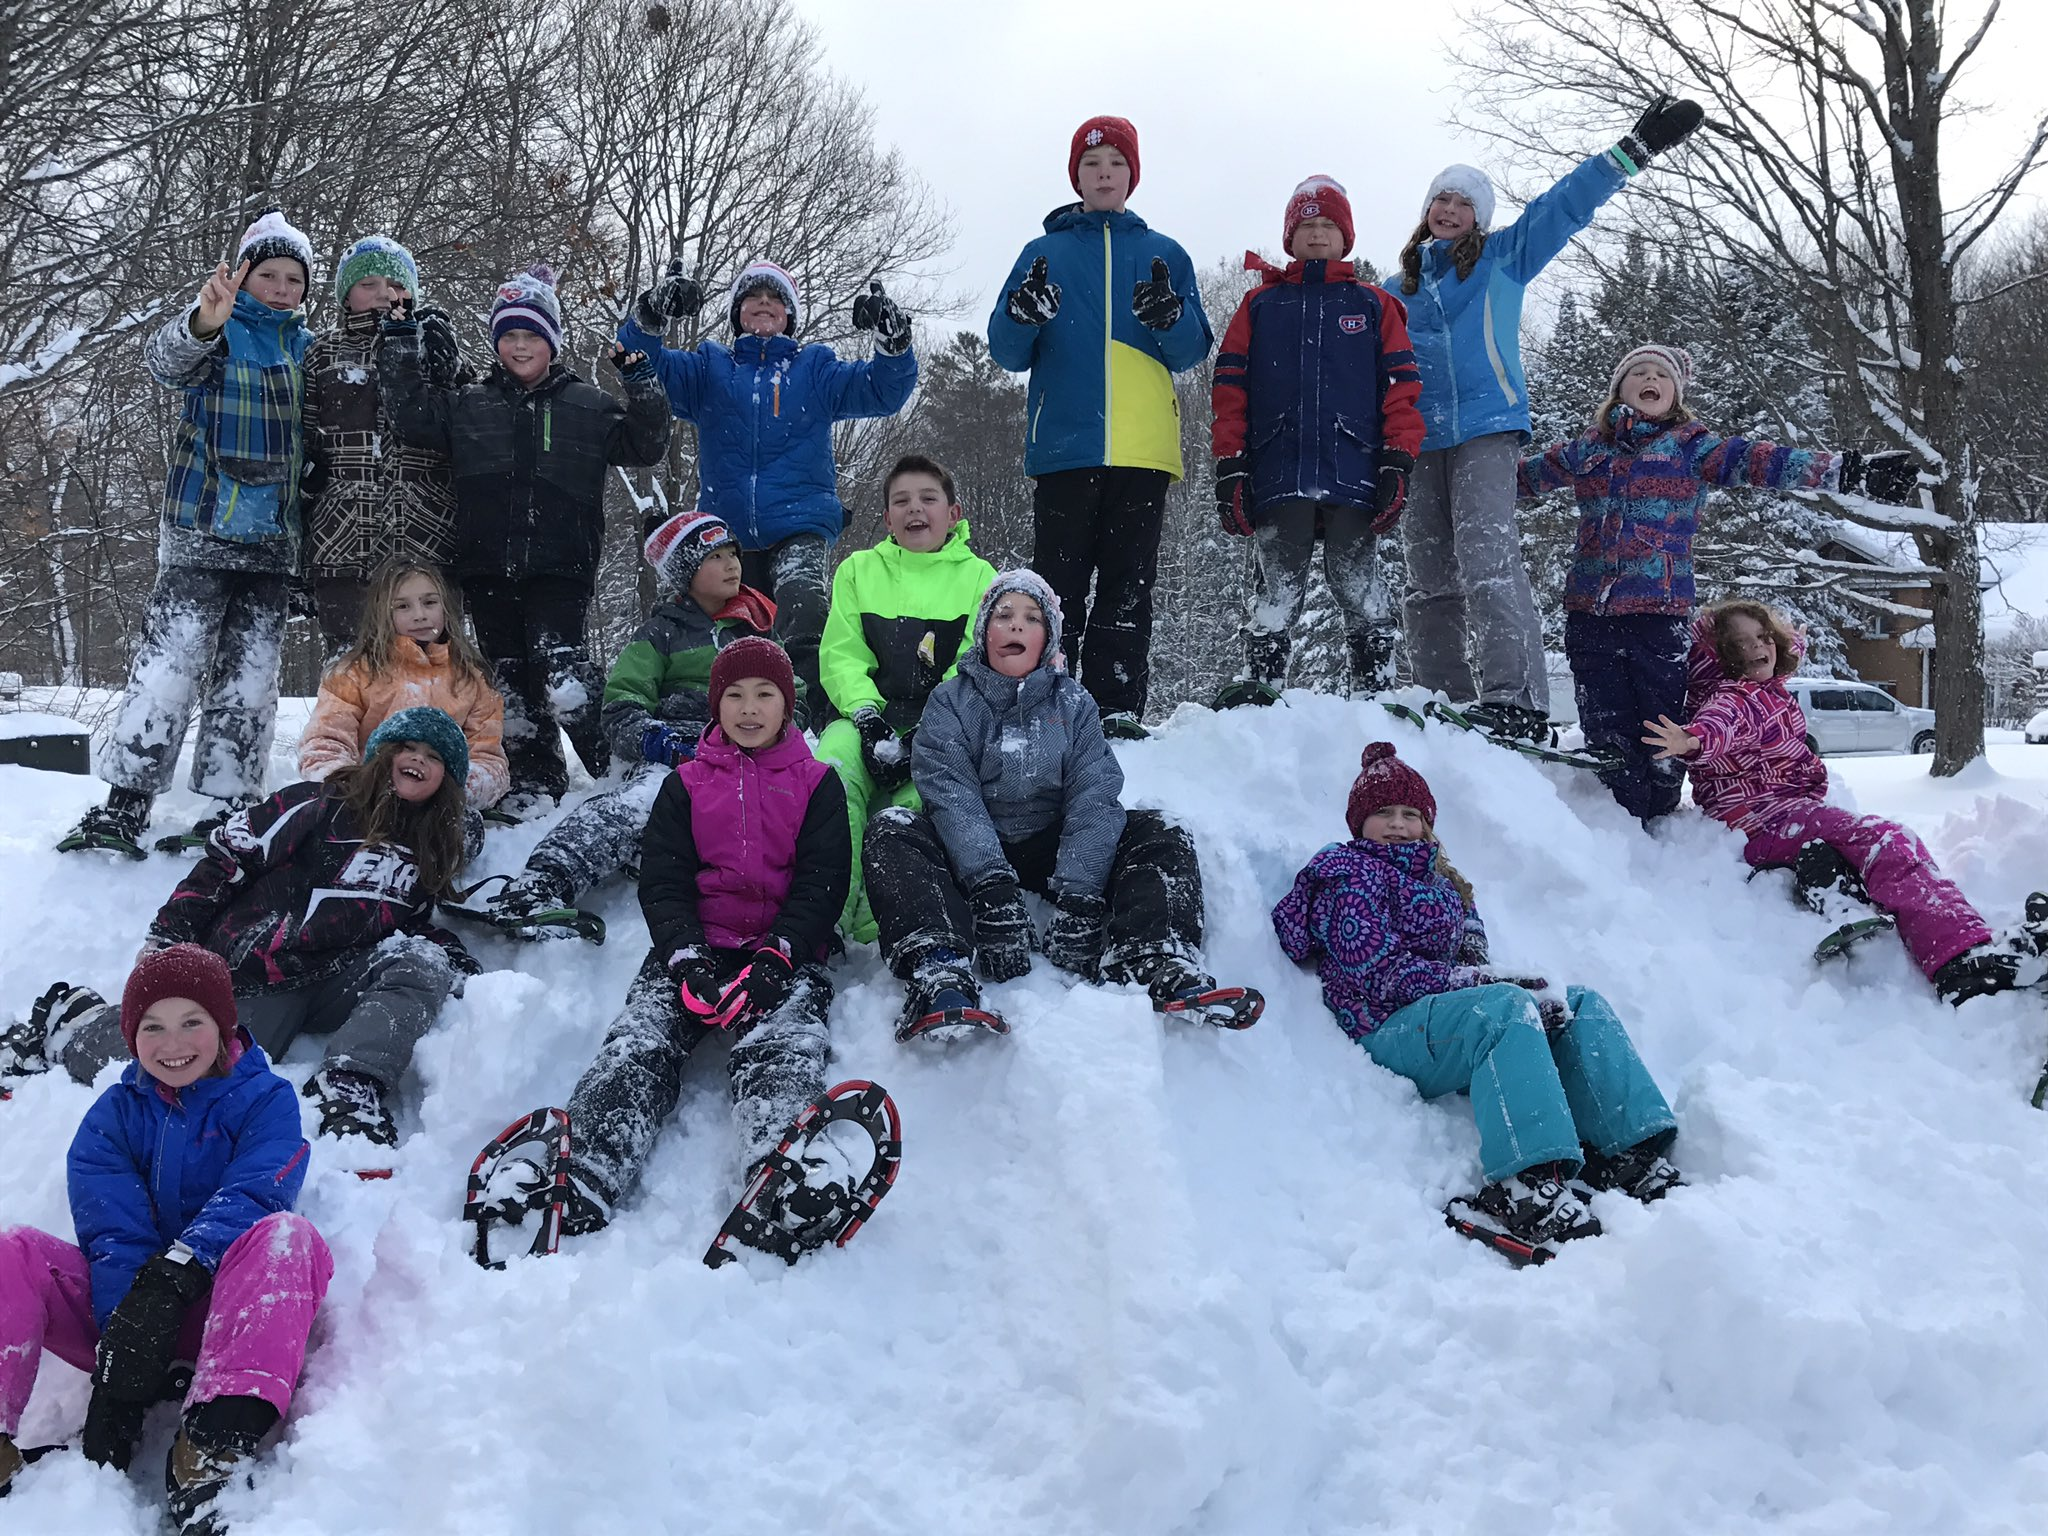 #snowday photo of @MacaulayPS Ss enjoying the great outdoors all year. #tldsbbrave #resilient Ss #feedallfour https://t.co/BtCIf4LLKN